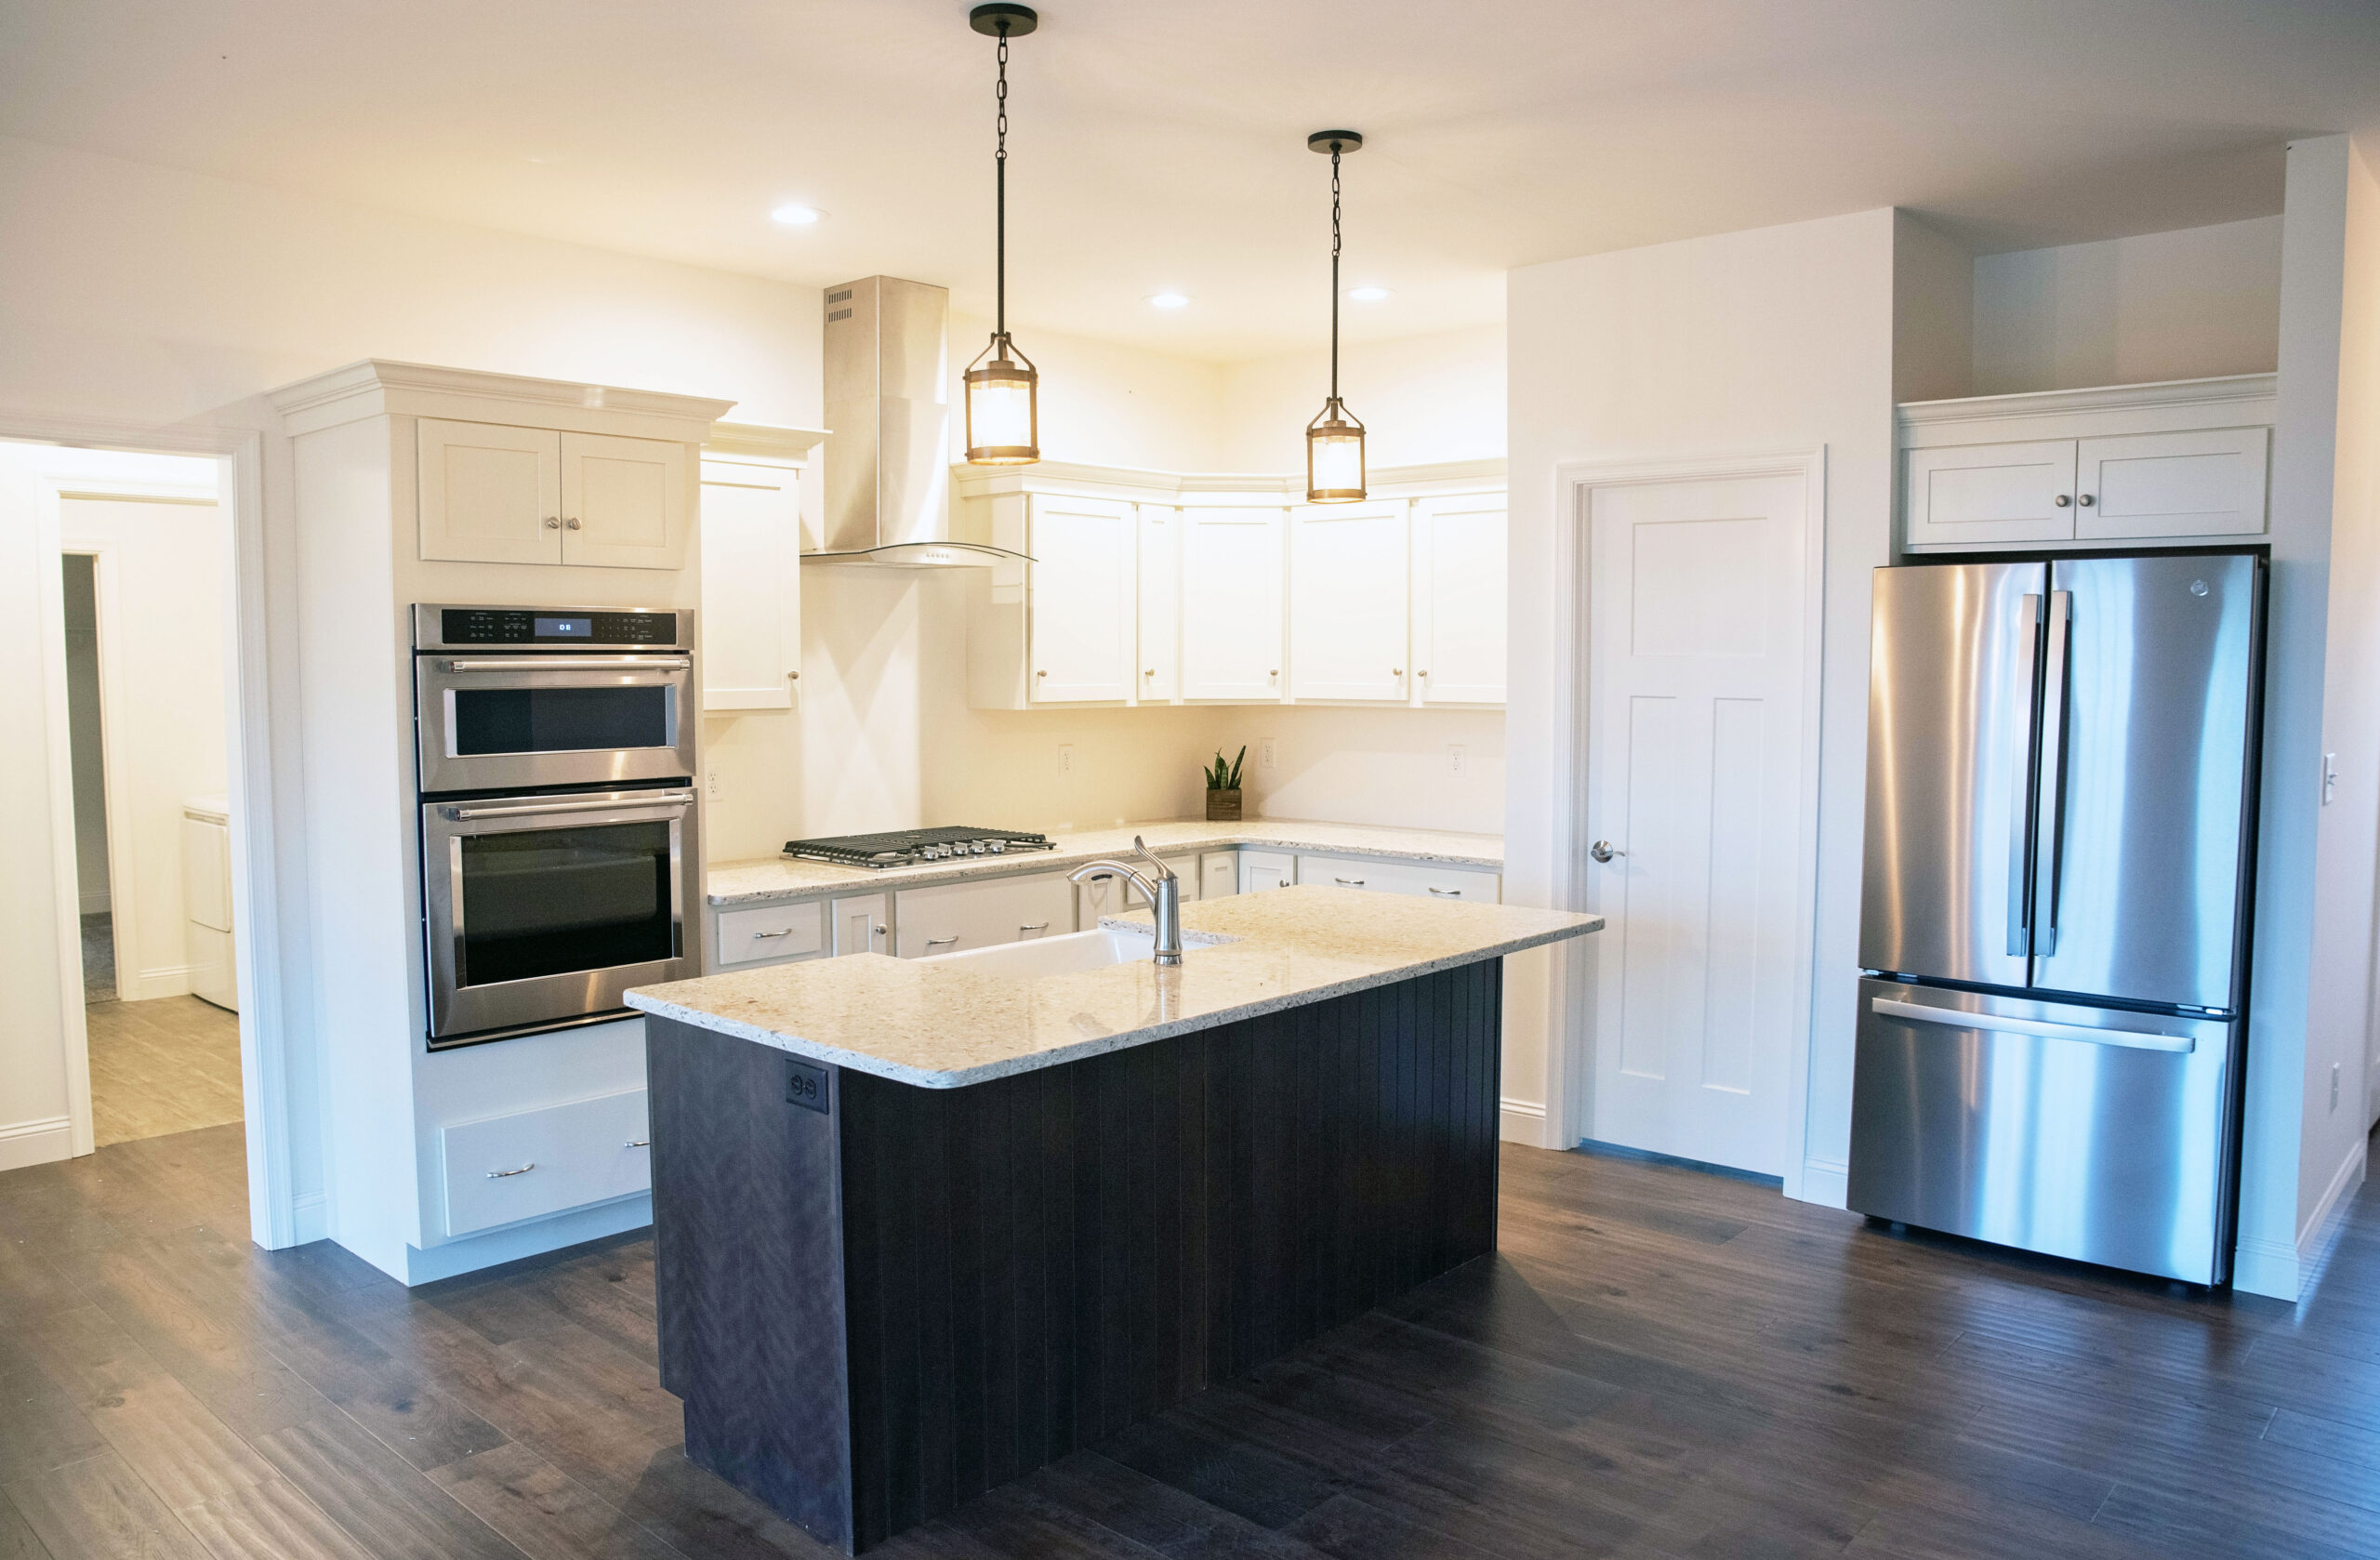 The kitchen with white cabints, a cherry stained island, quartz countertops, and stainless steel appliances.